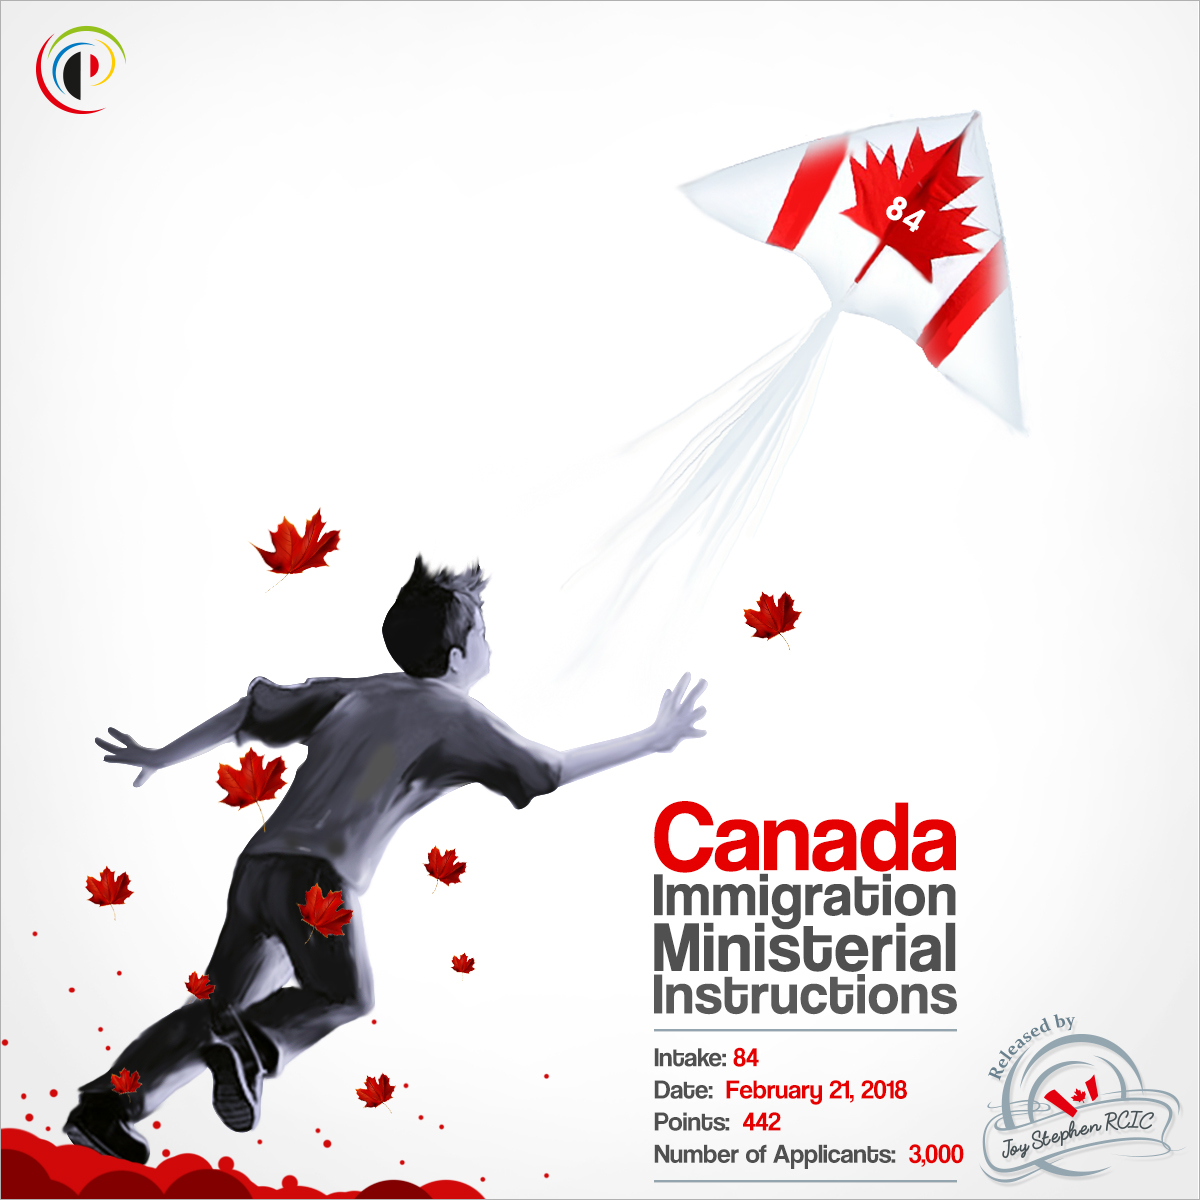 IRCC Ministerial Instructions Canada Immigration Express Entry Pick February 21st, 2018